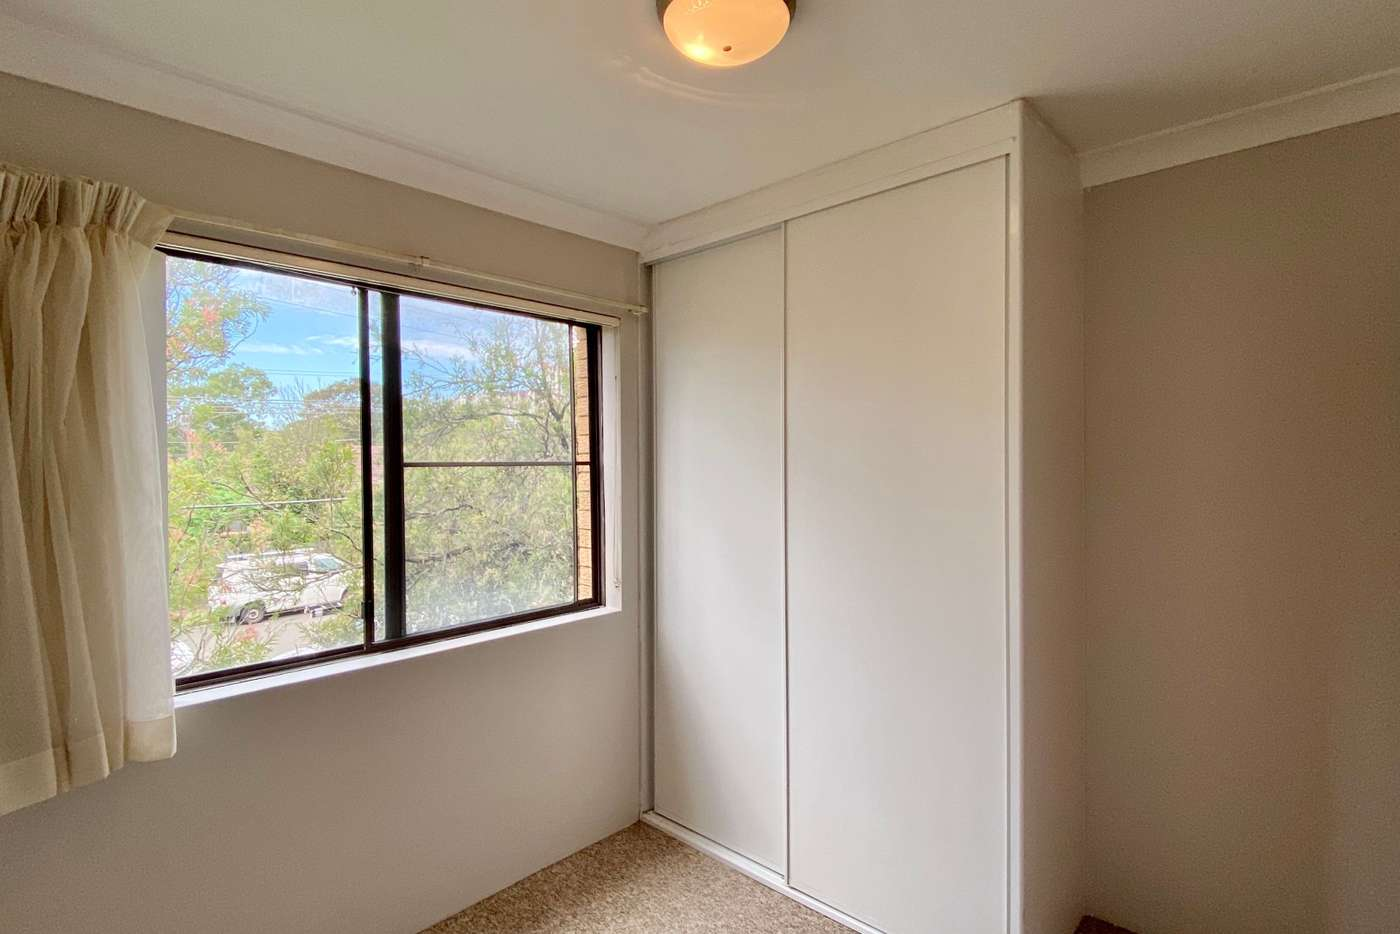 Sixth view of Homely unit listing, 3/27 Apsley Street, Penshurst NSW 2222